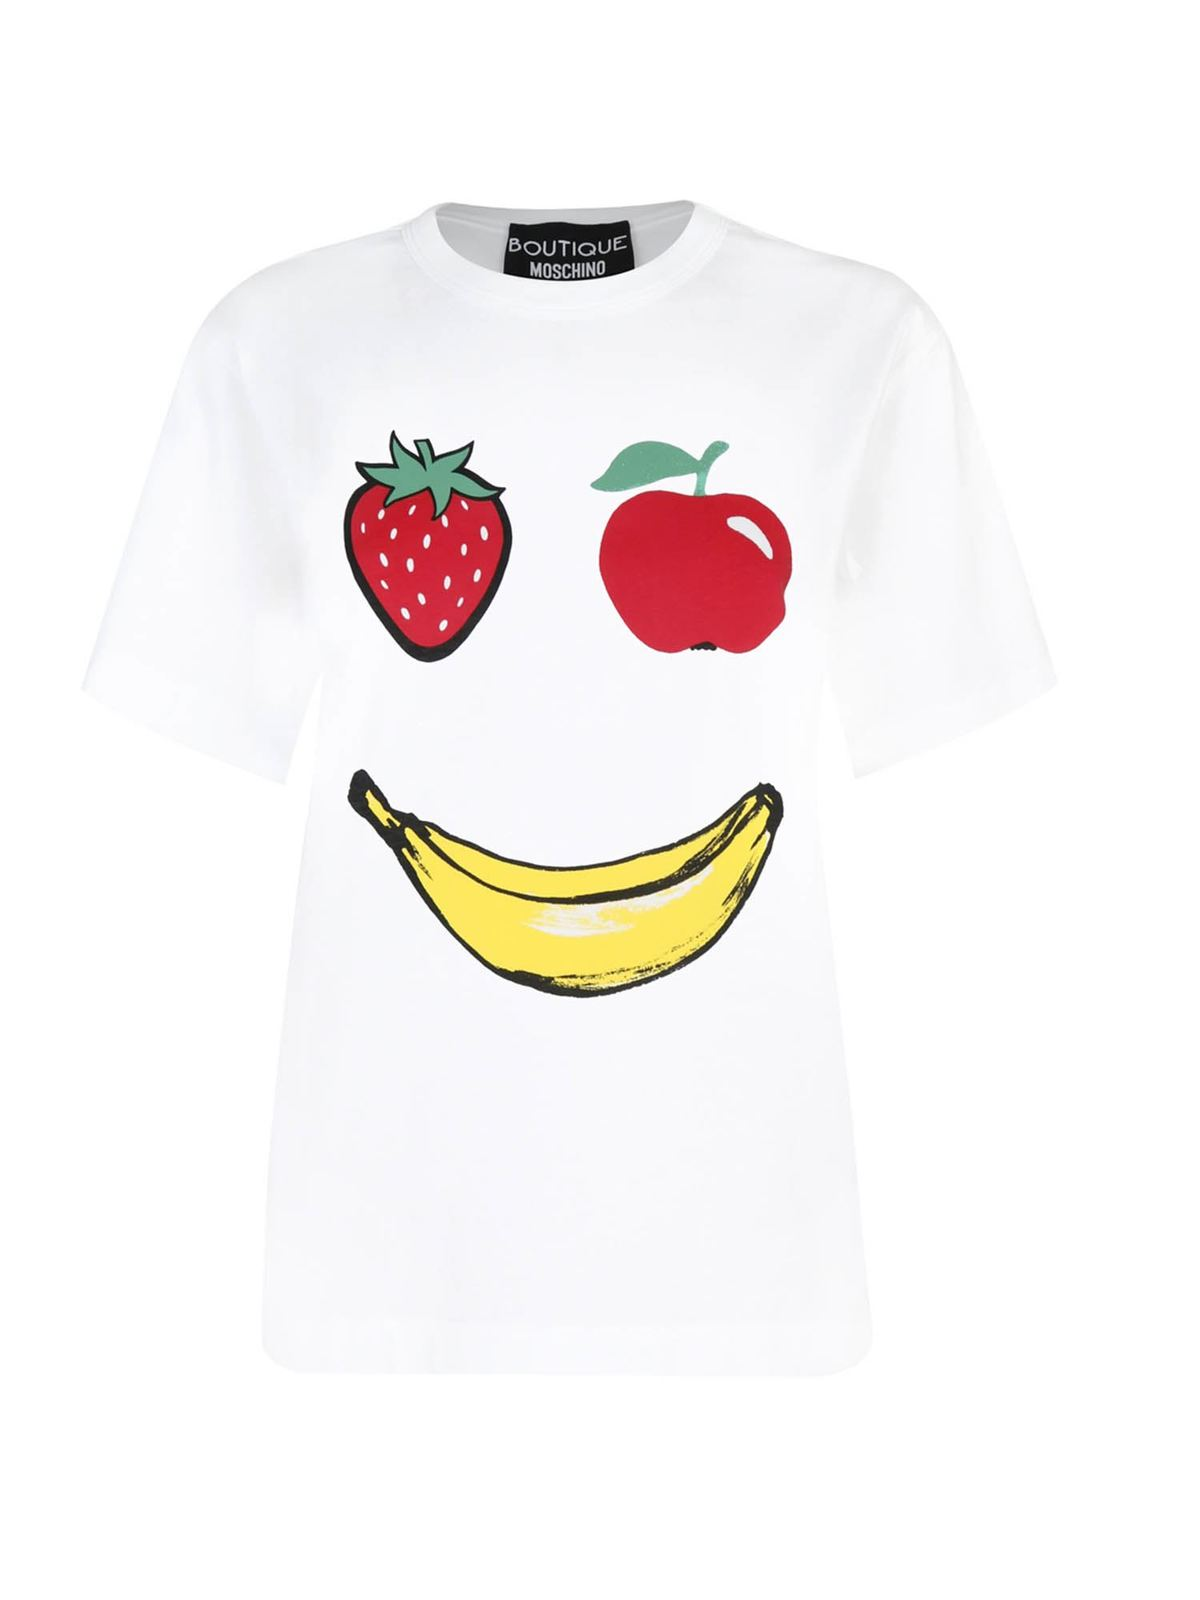 Moschino Boutique Cottons FRUIT SMILE PRINT T-SHIRT IN WHITE